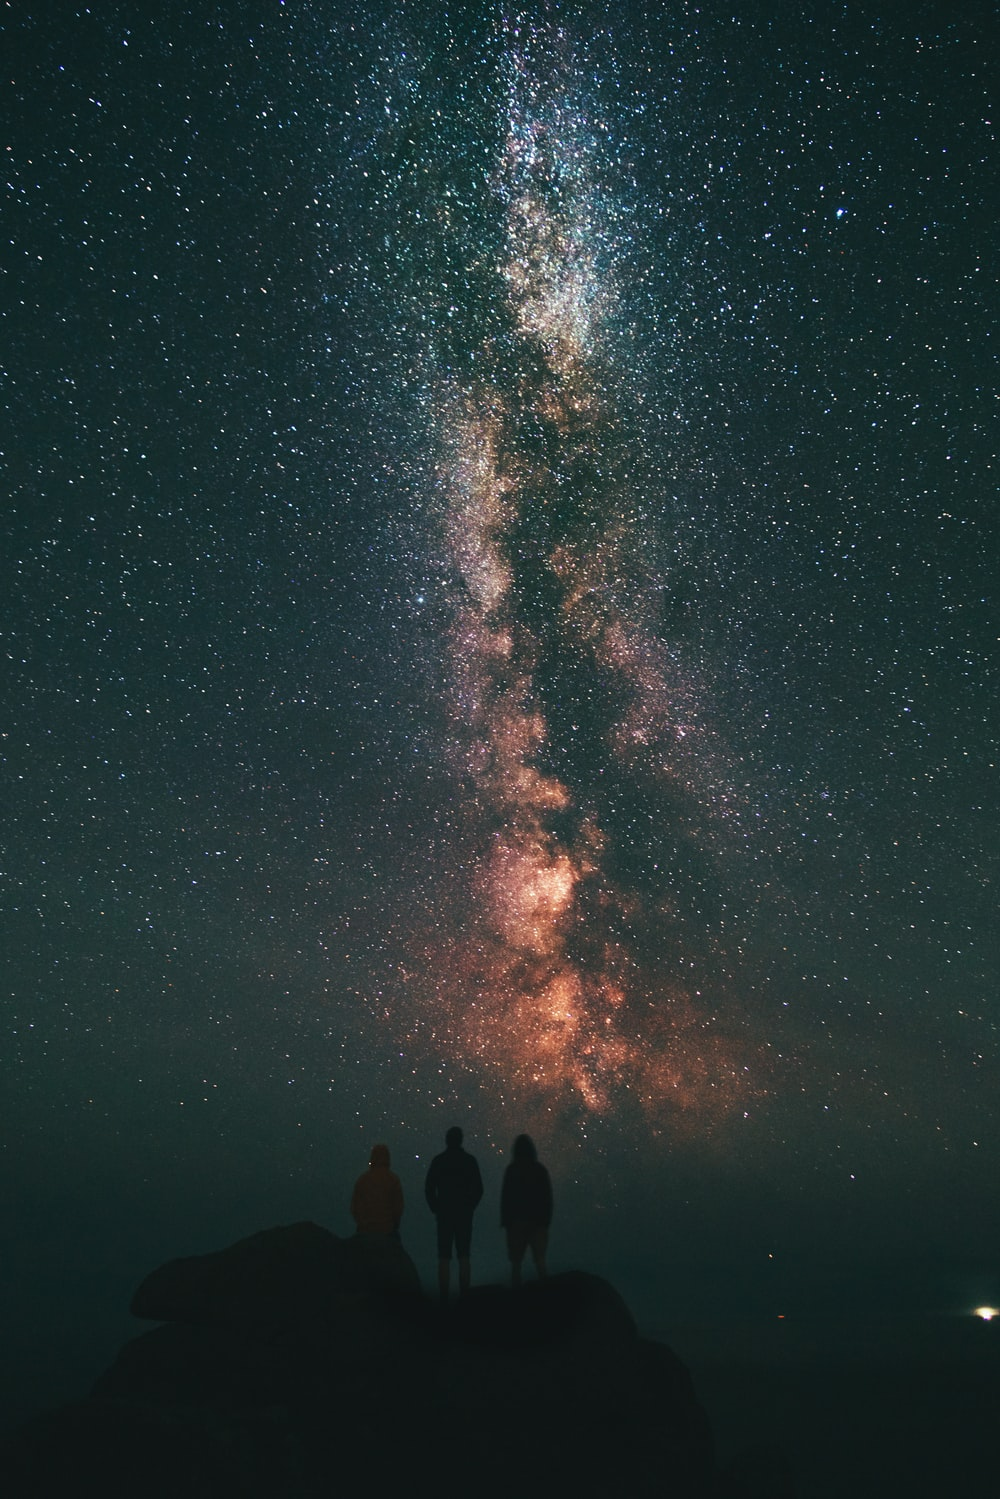 Three People Staring At A Vibrant Starry Night Sky